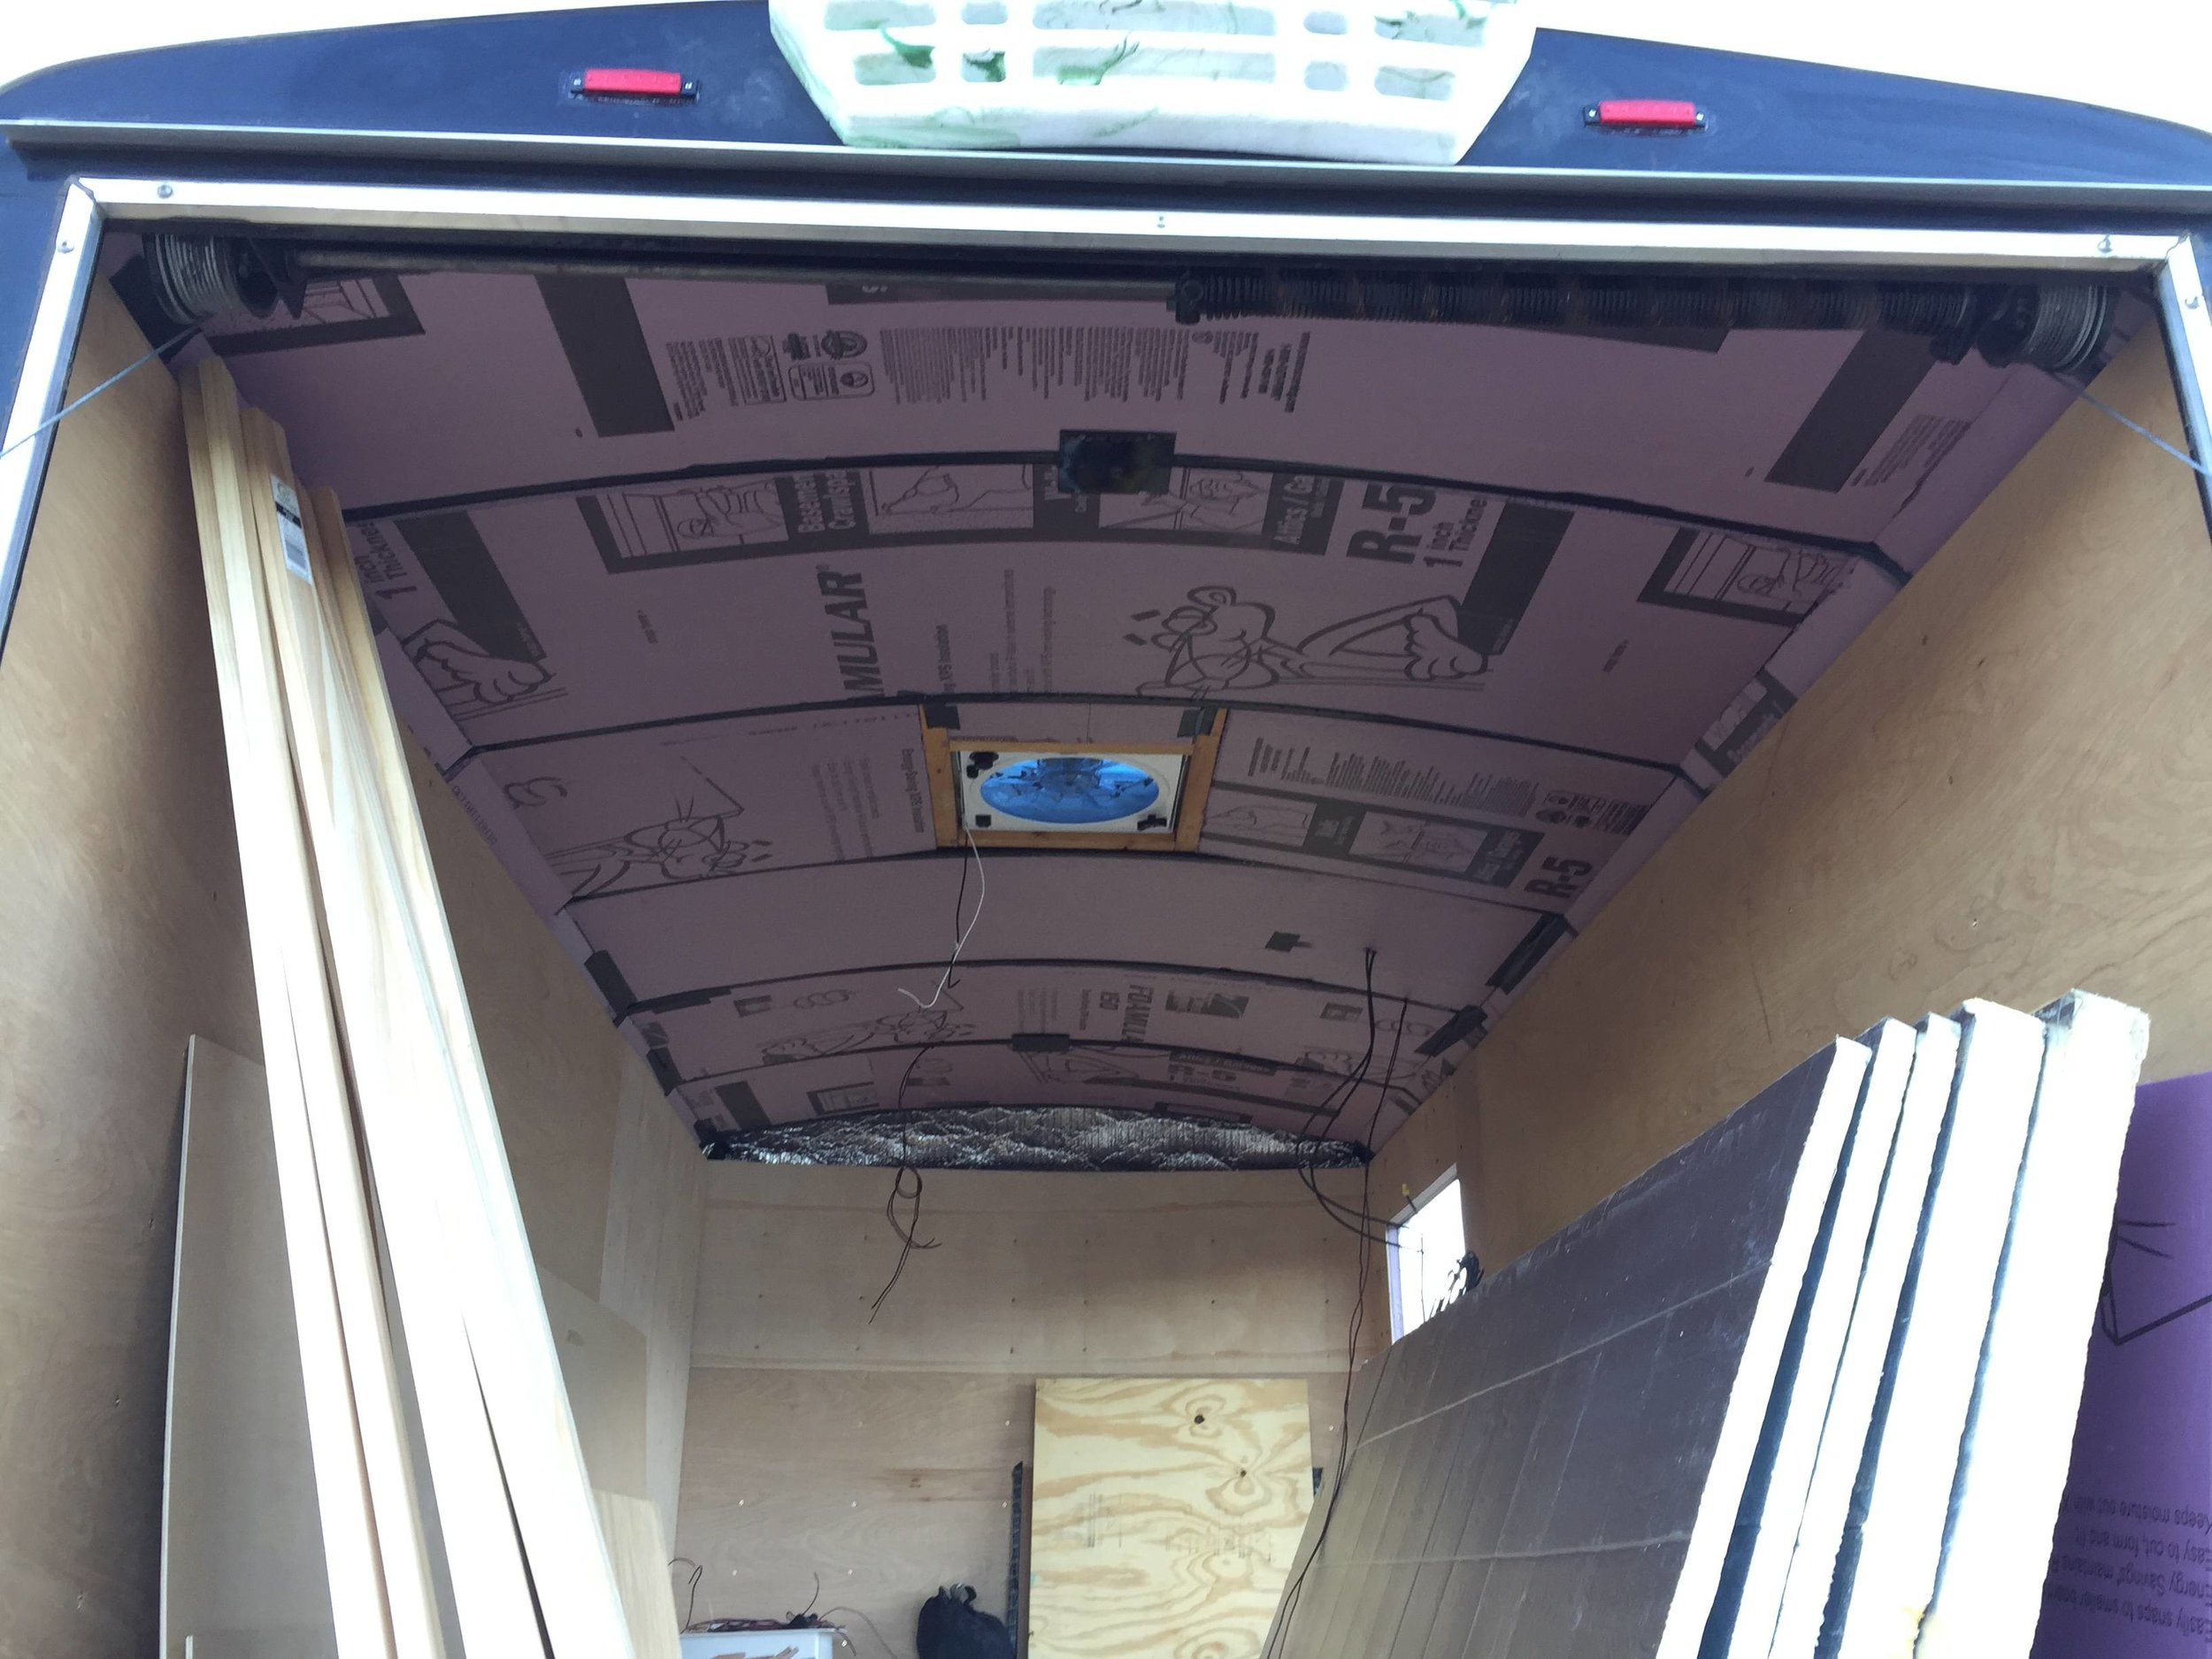 The first layer of ceiling insulation is in, in between the roof ribs. If I stopped here, those ribs would get too hot to touch for more than a couple seconds on a sunny day.